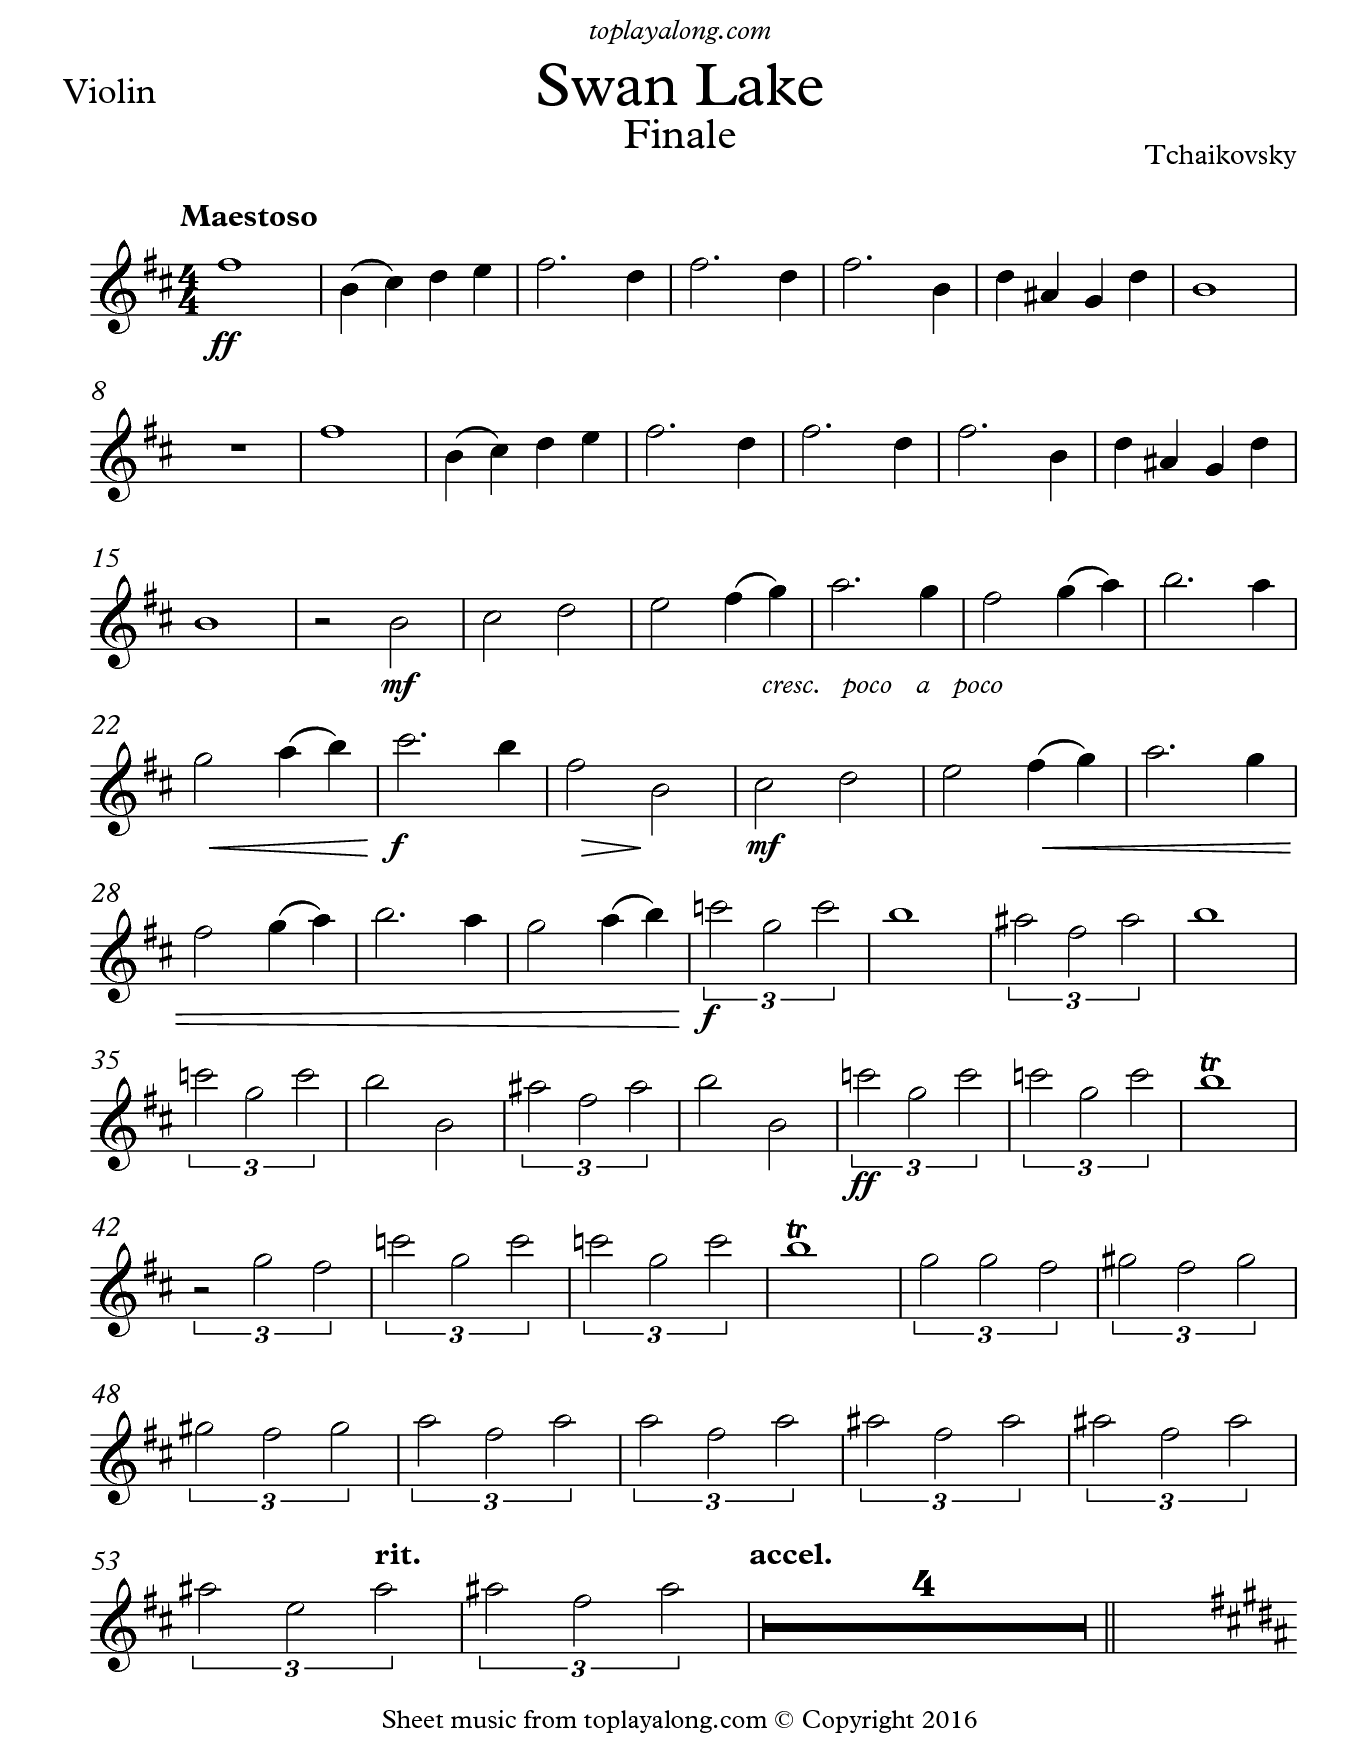 Swan Lake Finale by Tchaikovsky. Sheet music for Violin, page 1.